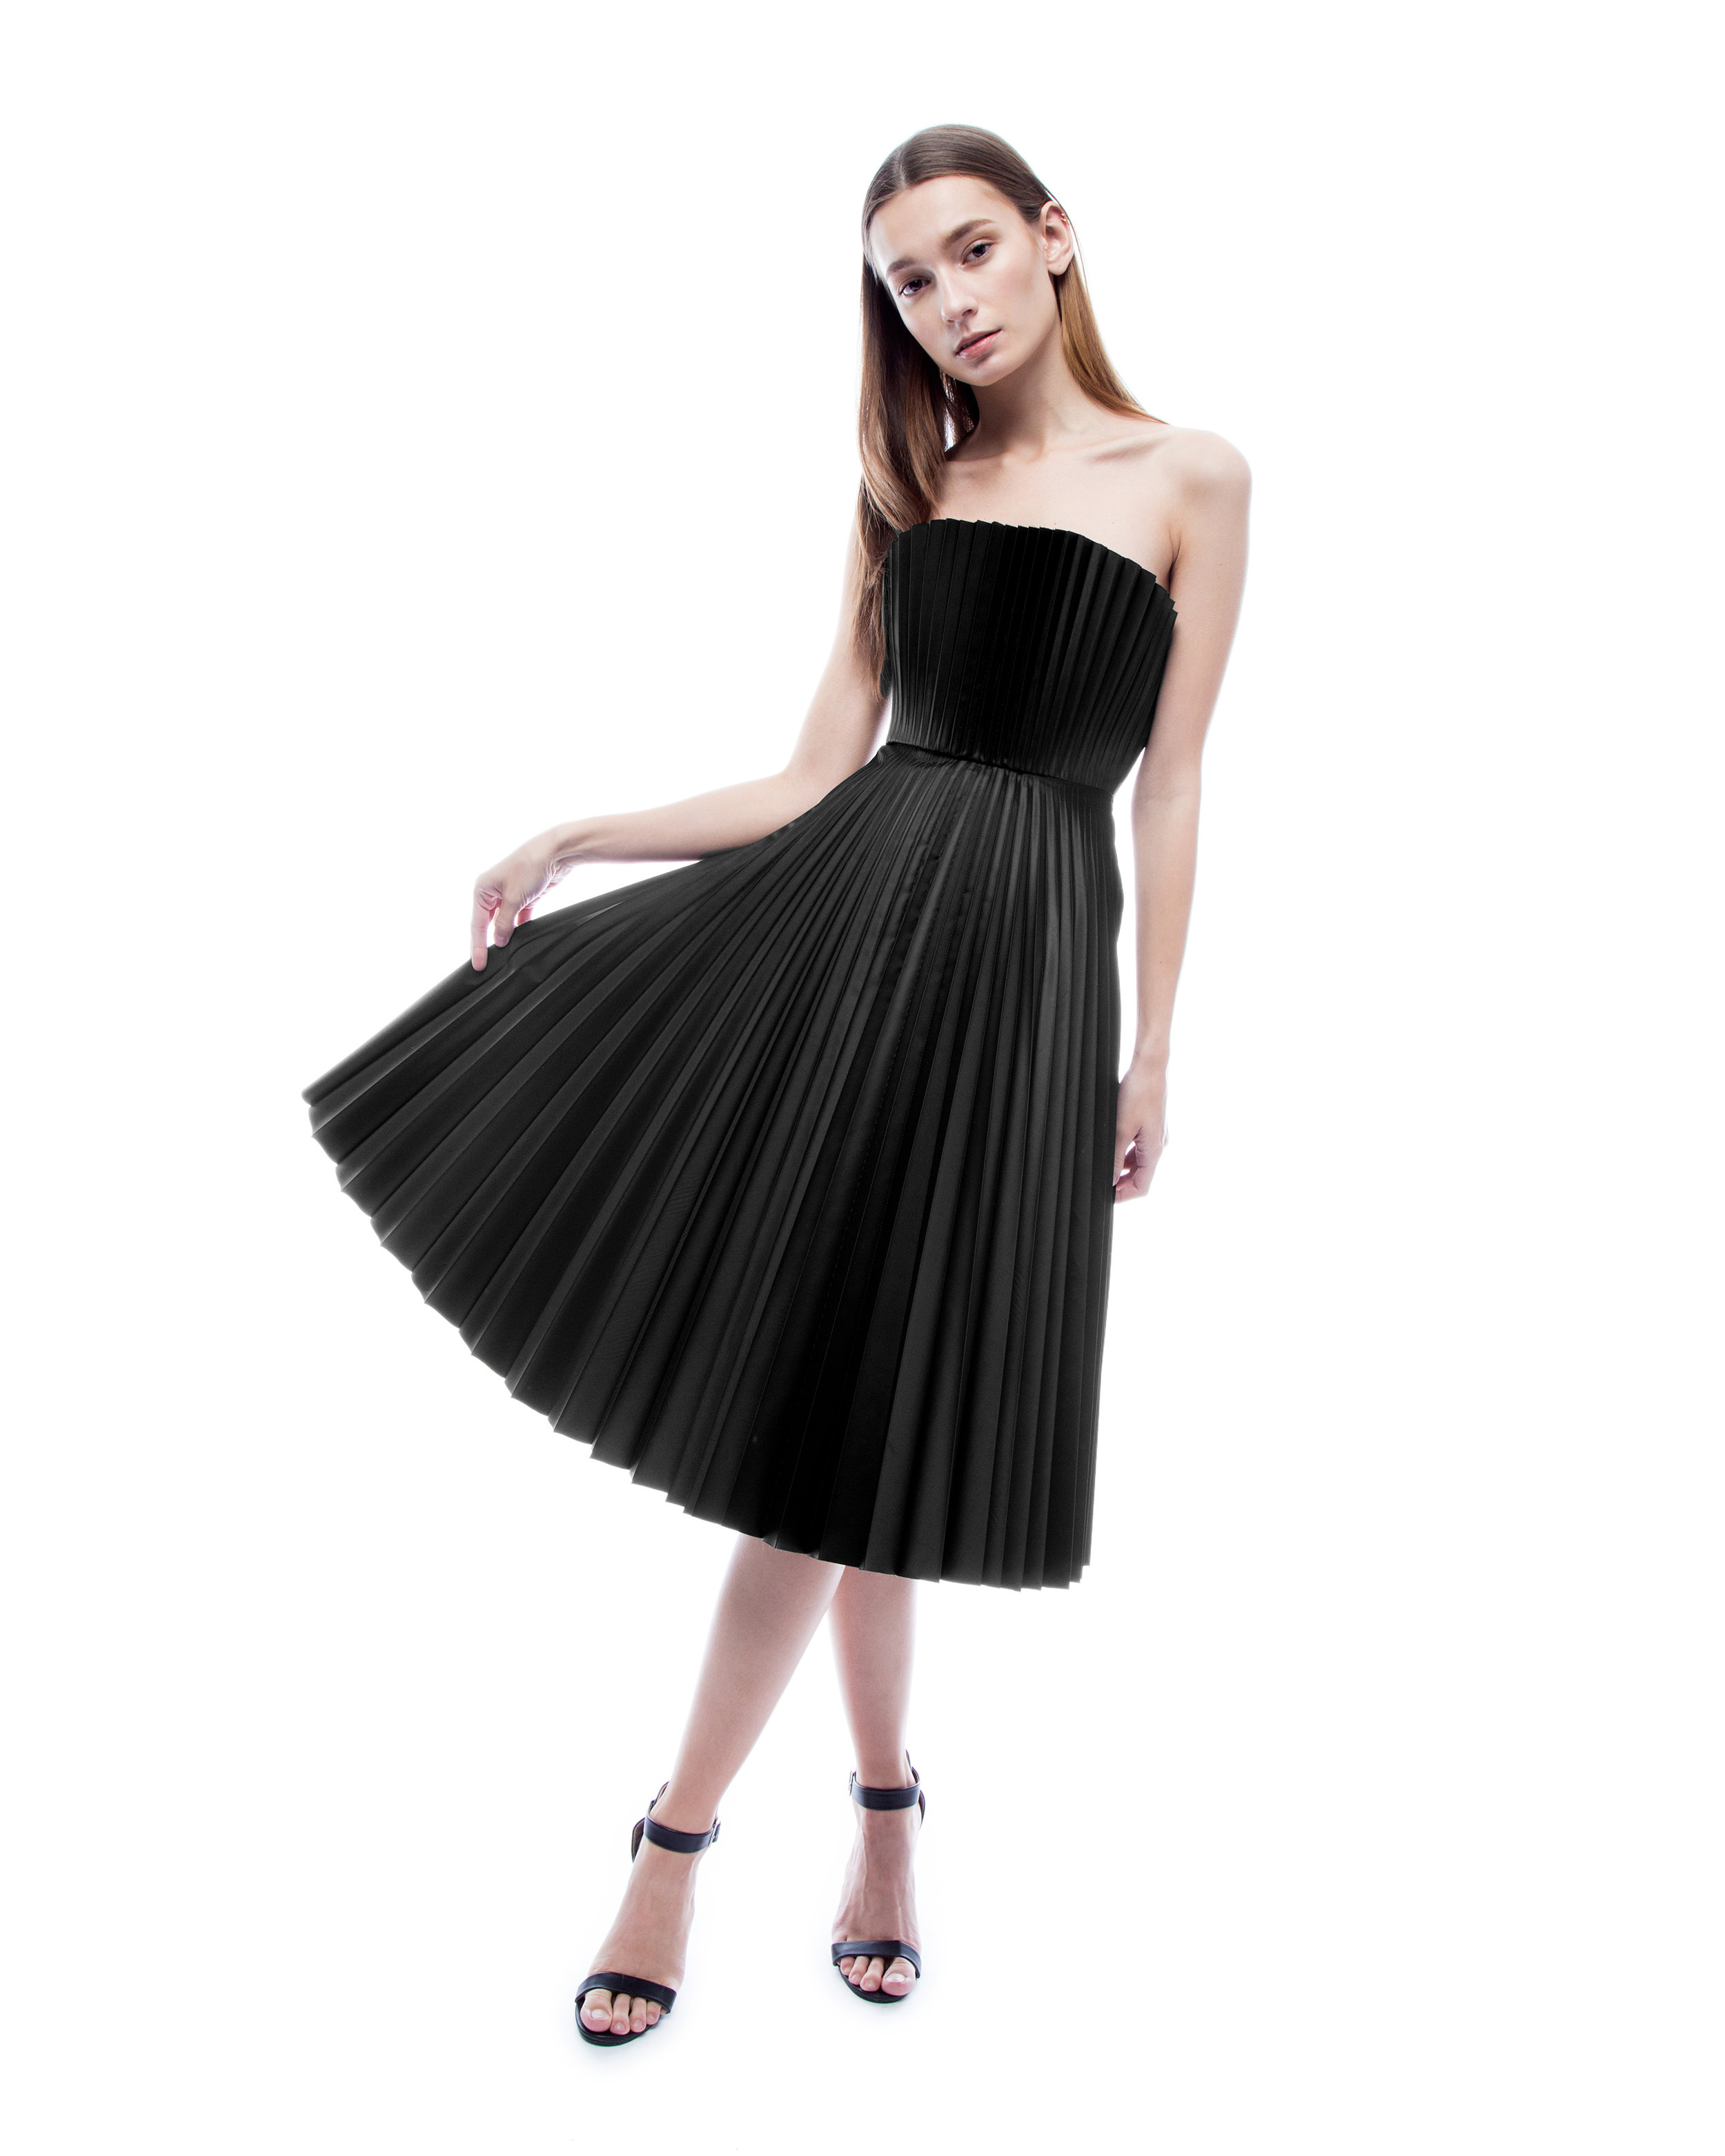 01-olya-kosterina-black-pleated-dress.jpg